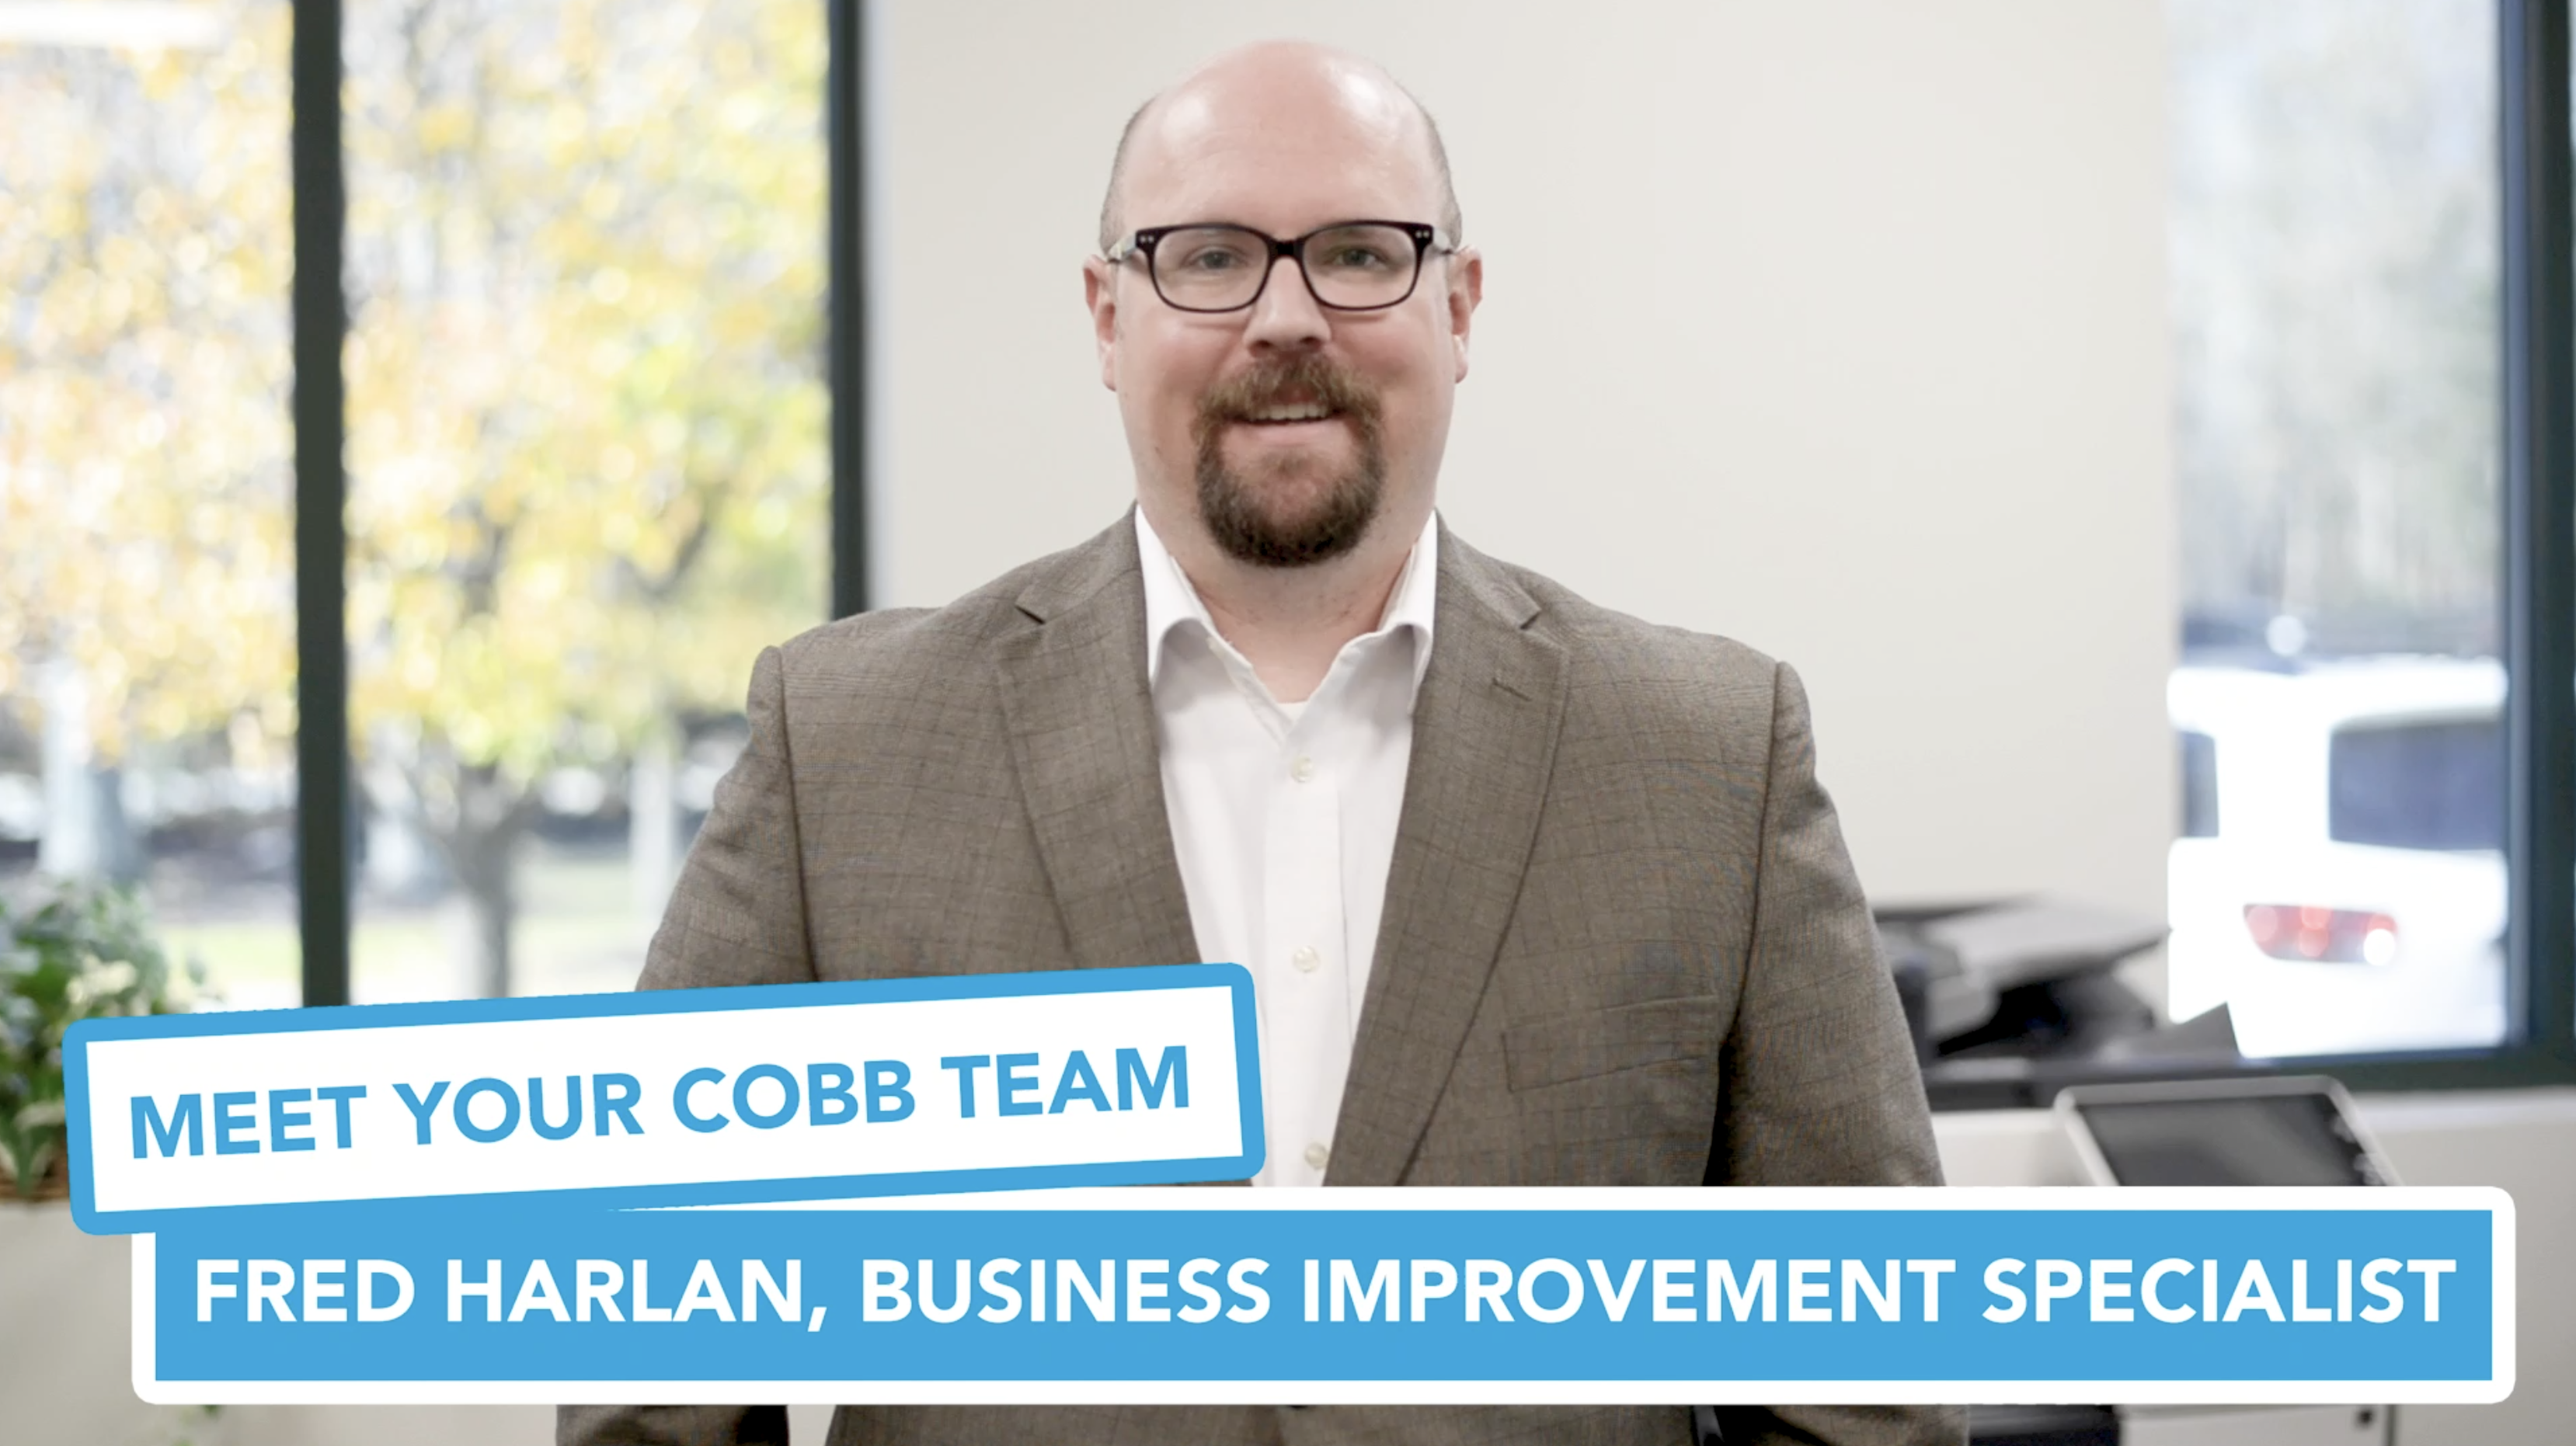 Meet Your Cobb Team: Fred Harlan, Business Improvement Specialist